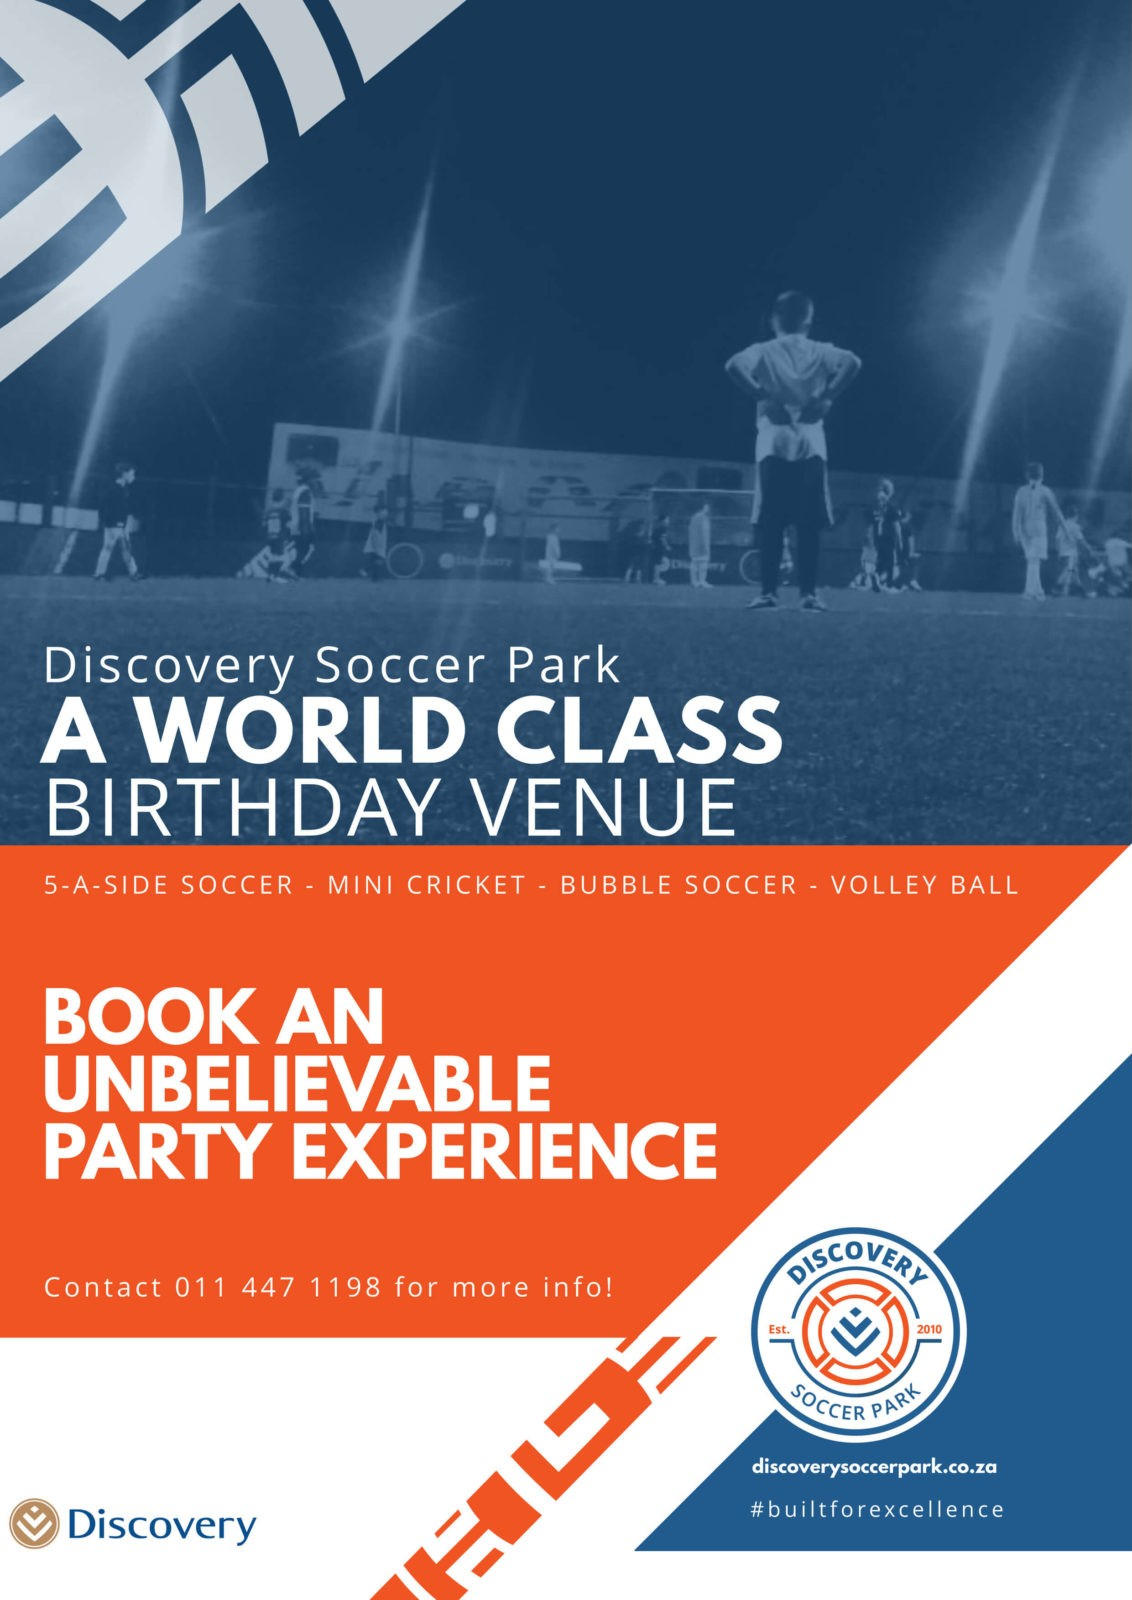 wanderers club Discovery Soccer Park News, April 2019 2